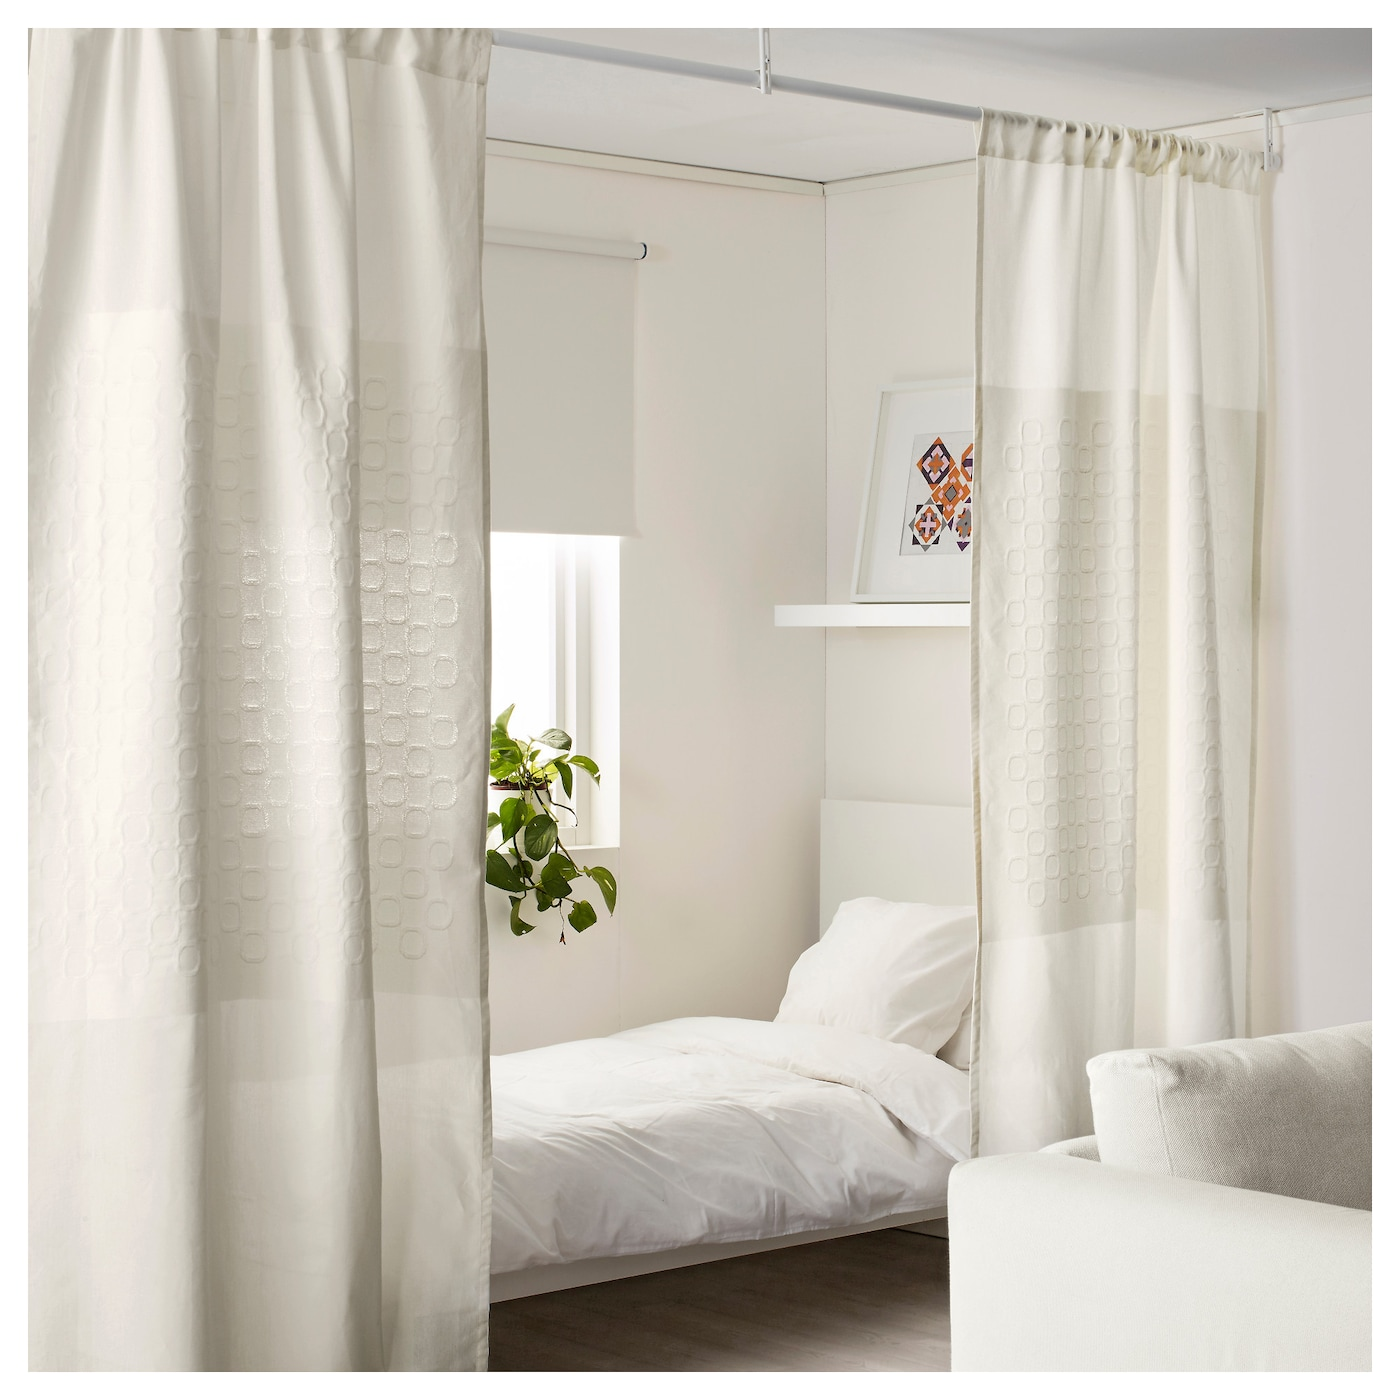 papyruss v rideau s parateur de pi ce blanc 120x300 cm ikea. Black Bedroom Furniture Sets. Home Design Ideas